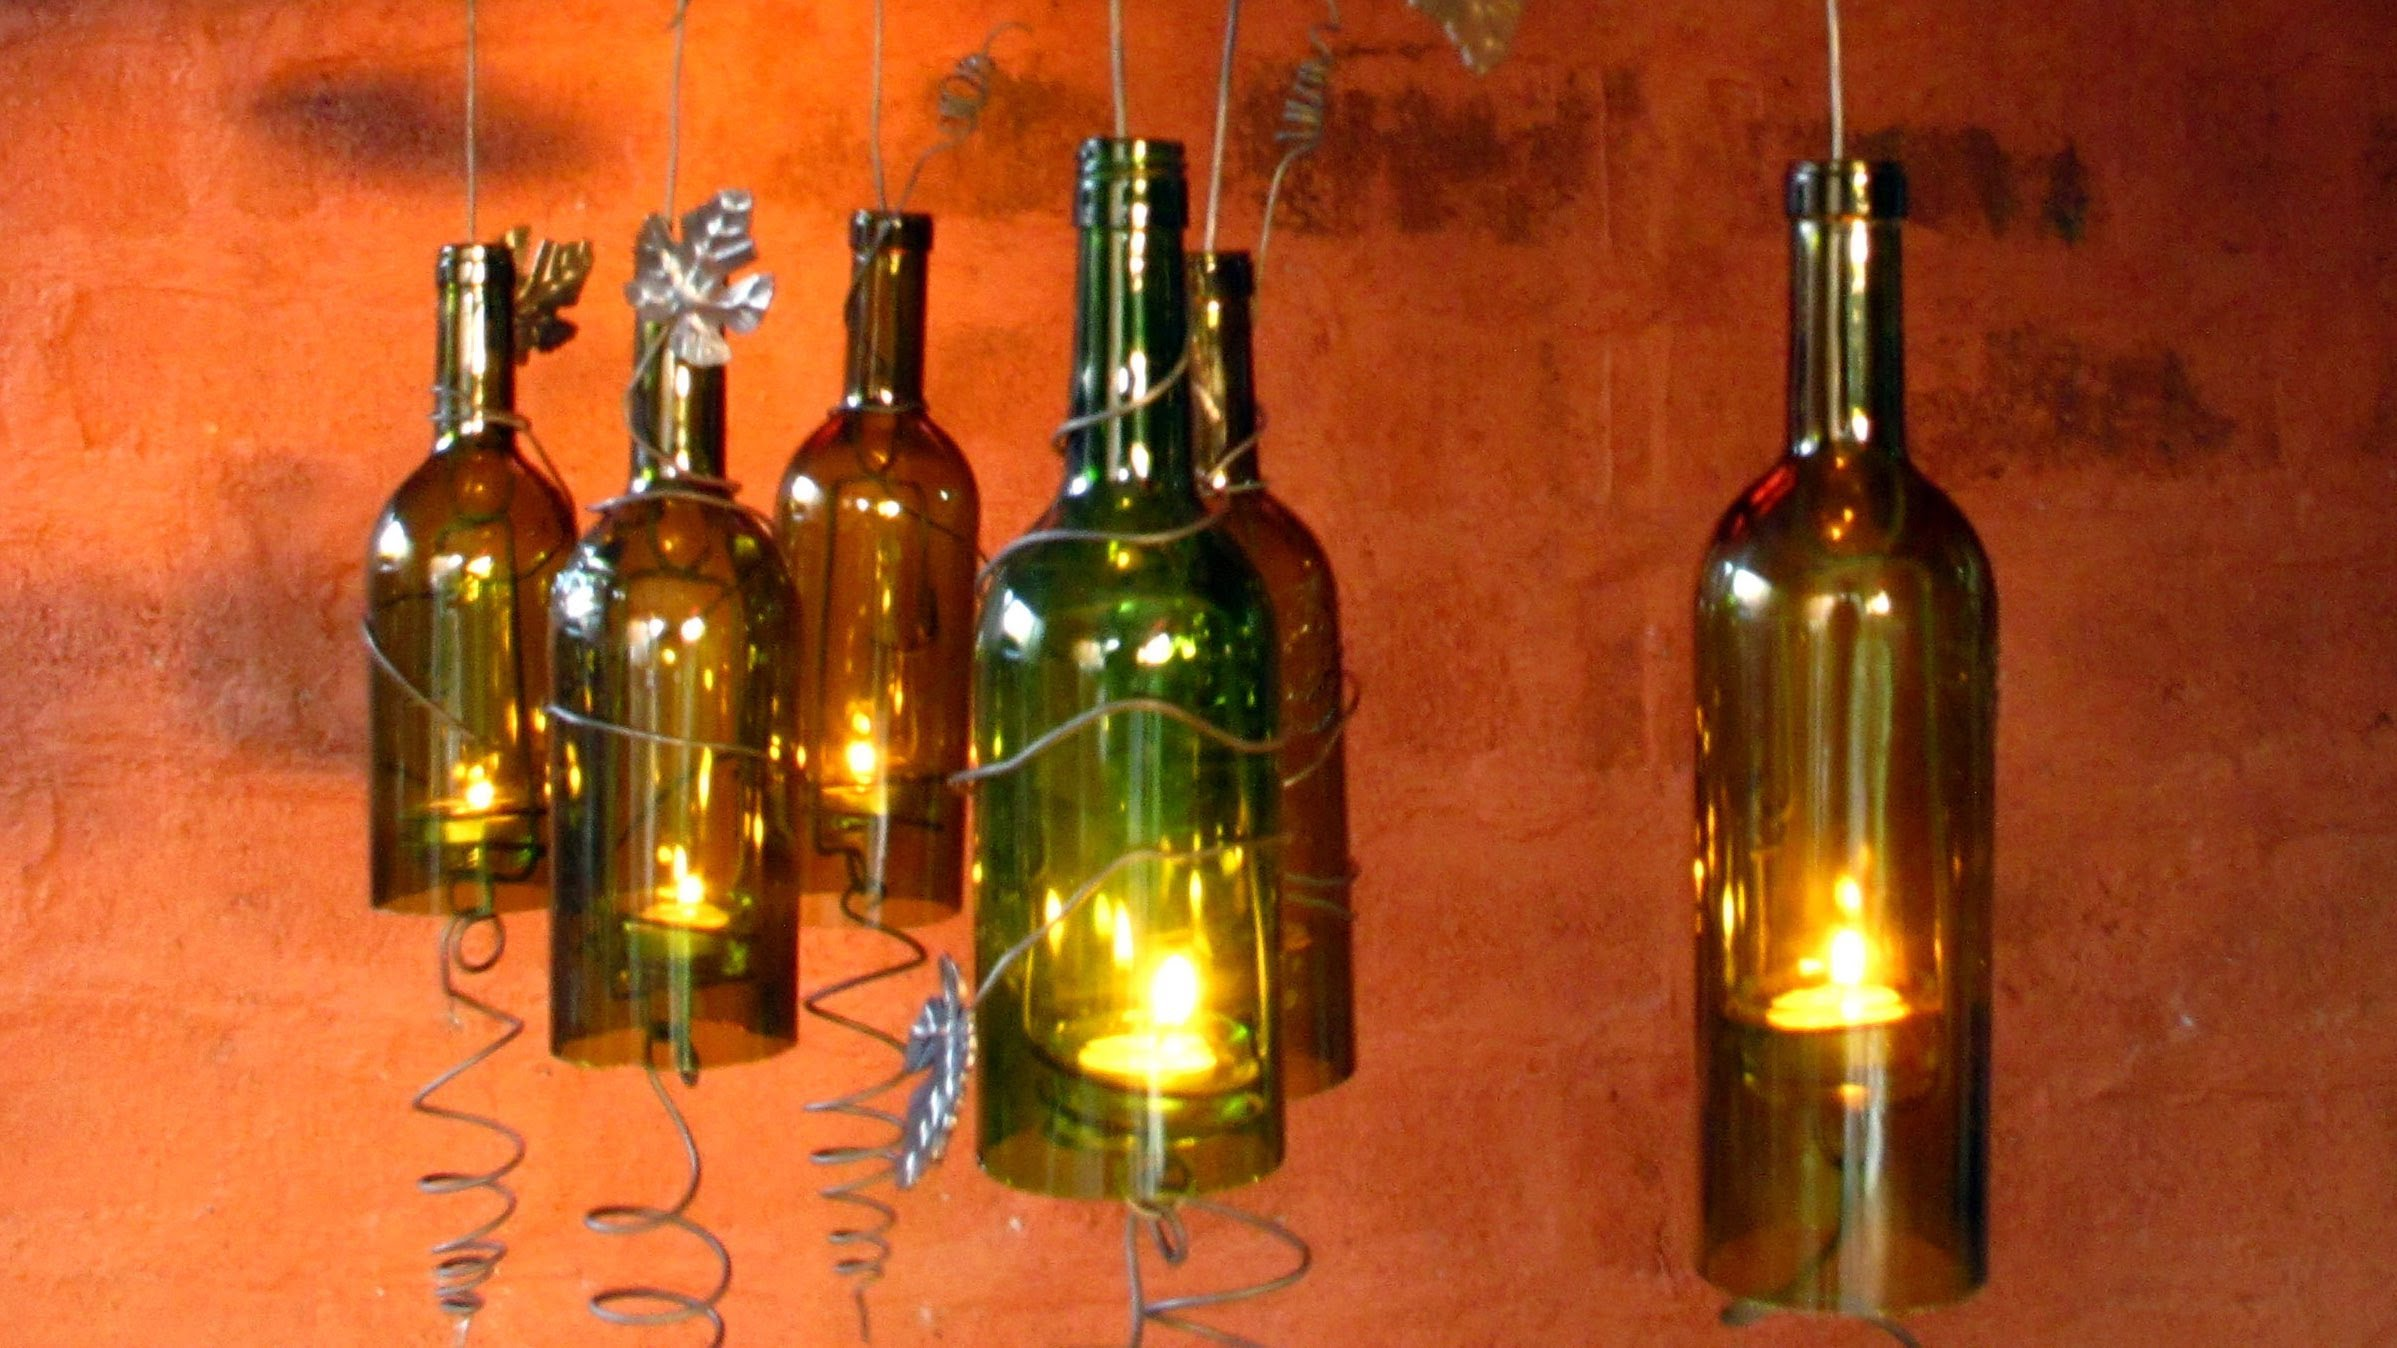 diy recycled wine bottles made into a hurricane candle holder